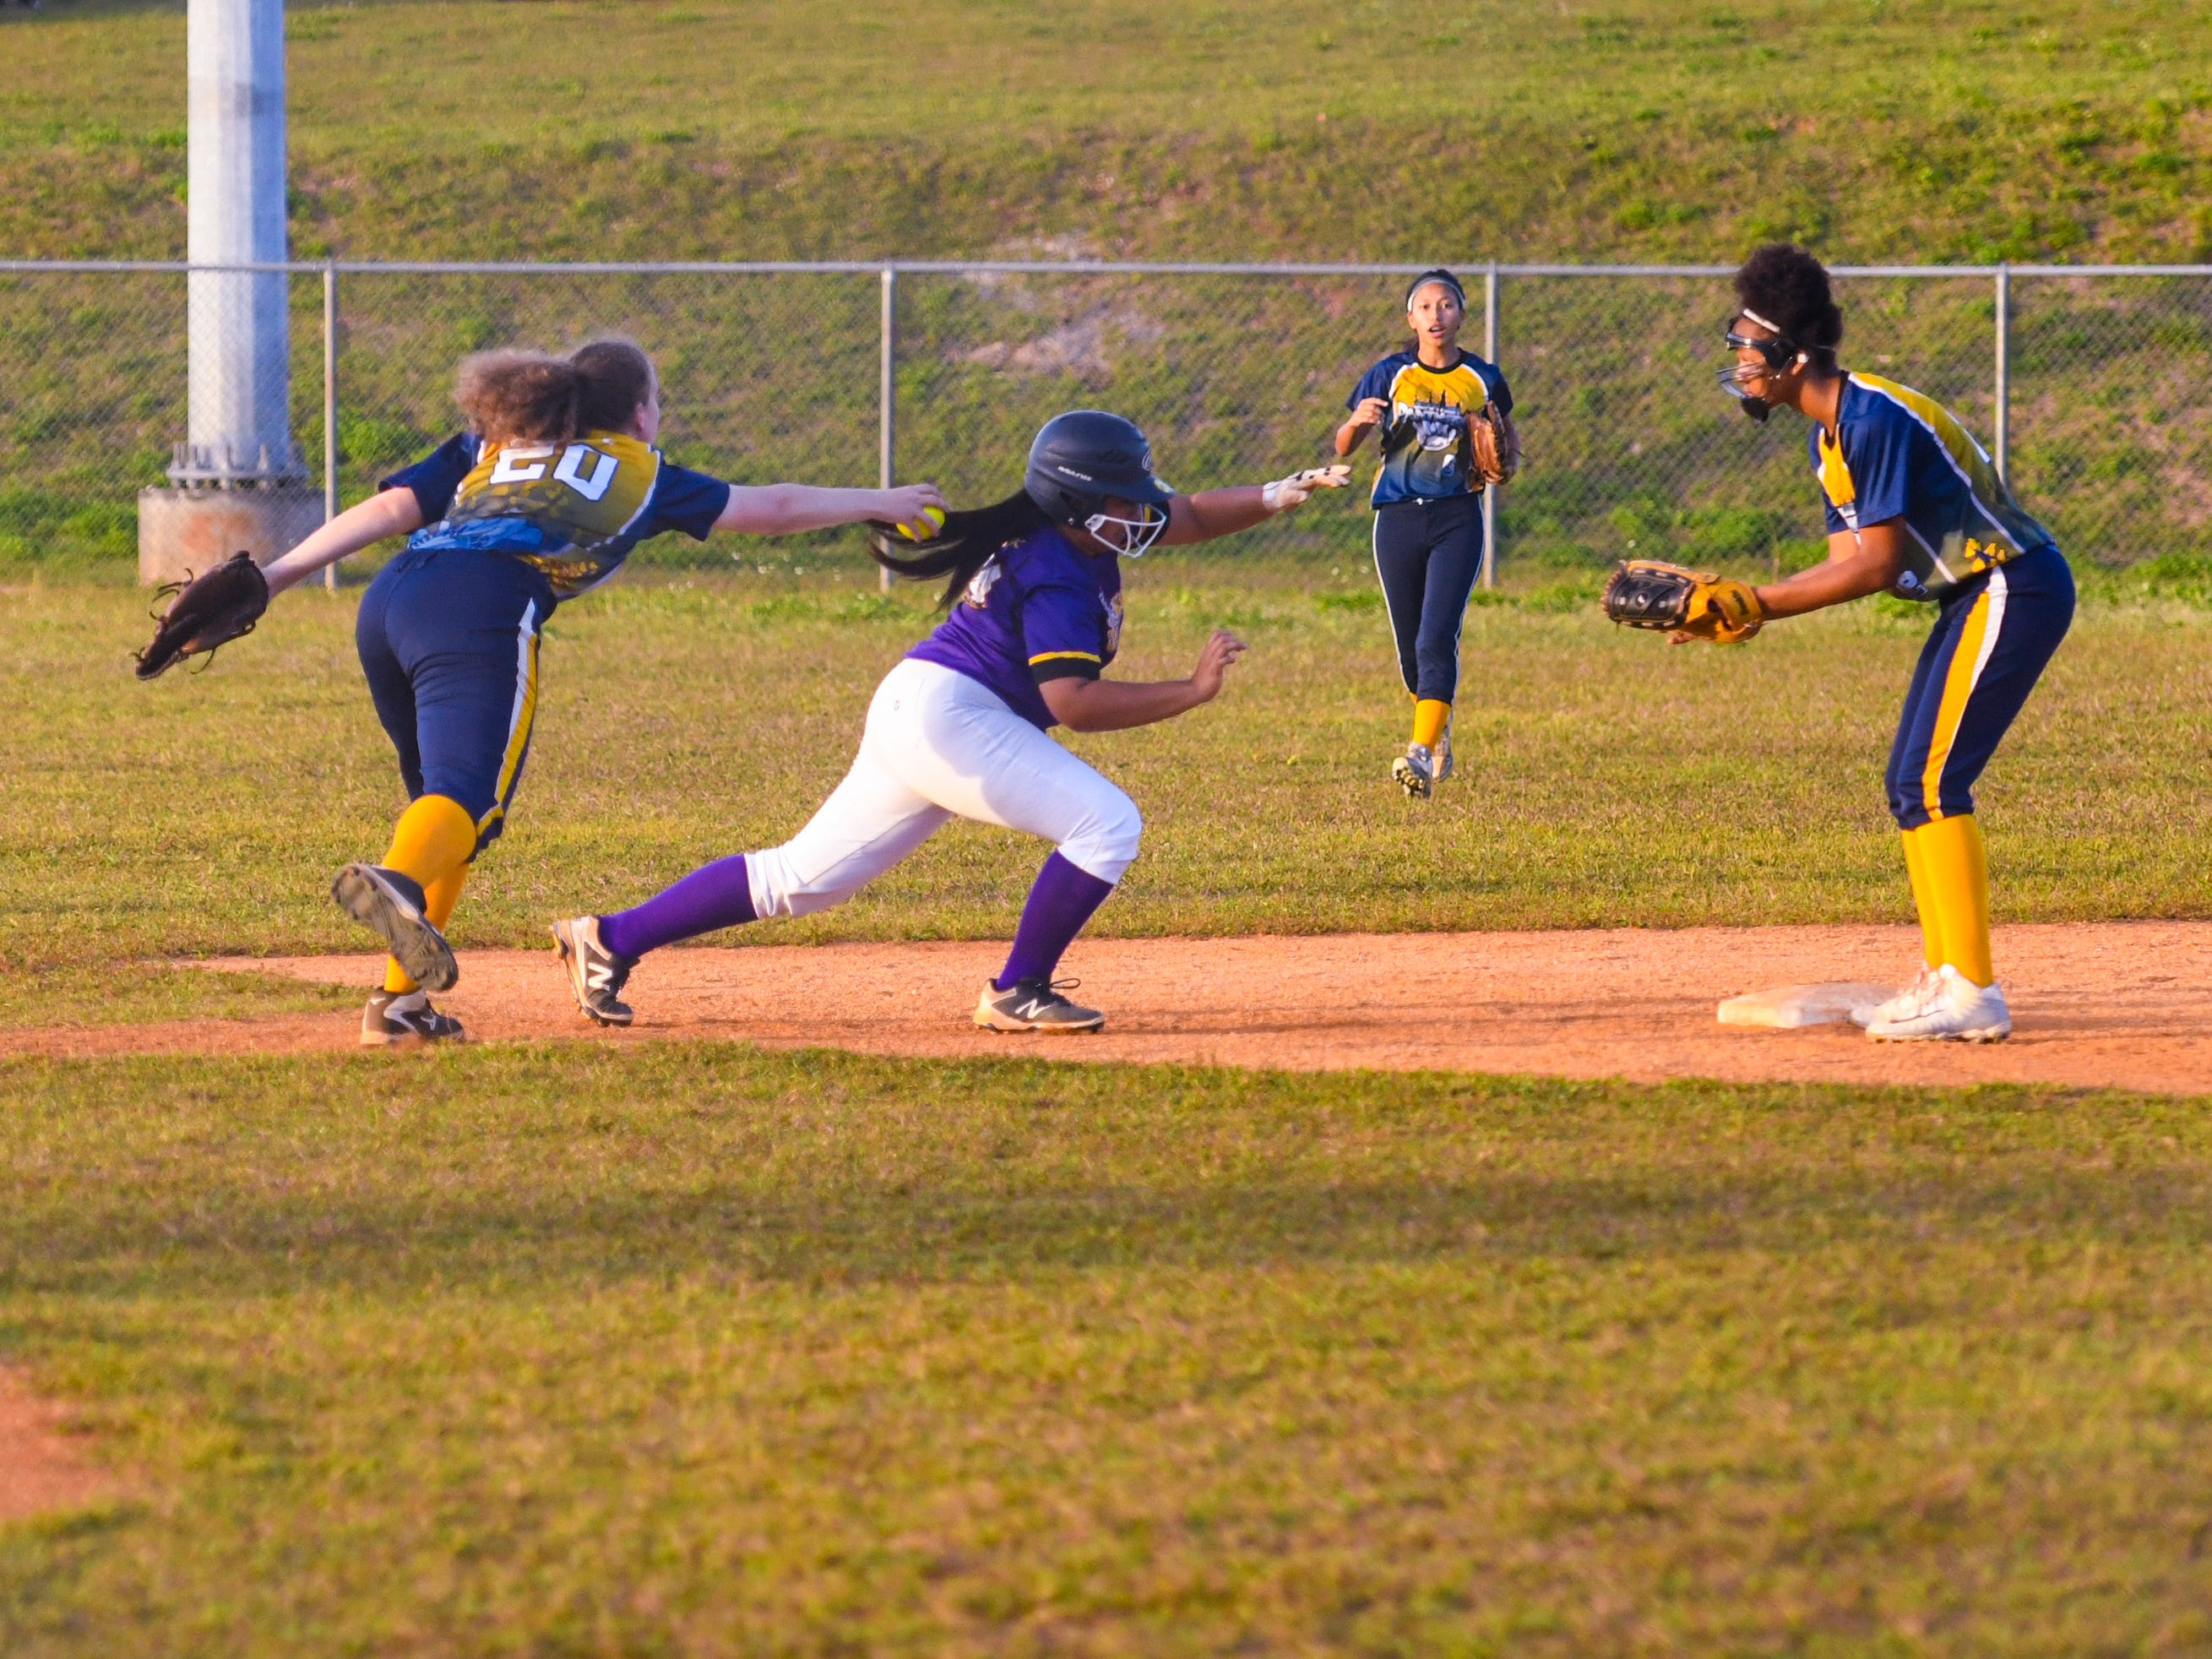 The Guam High School Panthers took on the challenge of the George Washington High School Geckos in IIAAG girls softball action on the diamond at Okkodo High School in Dededo on Thursday, March 7, 2019.